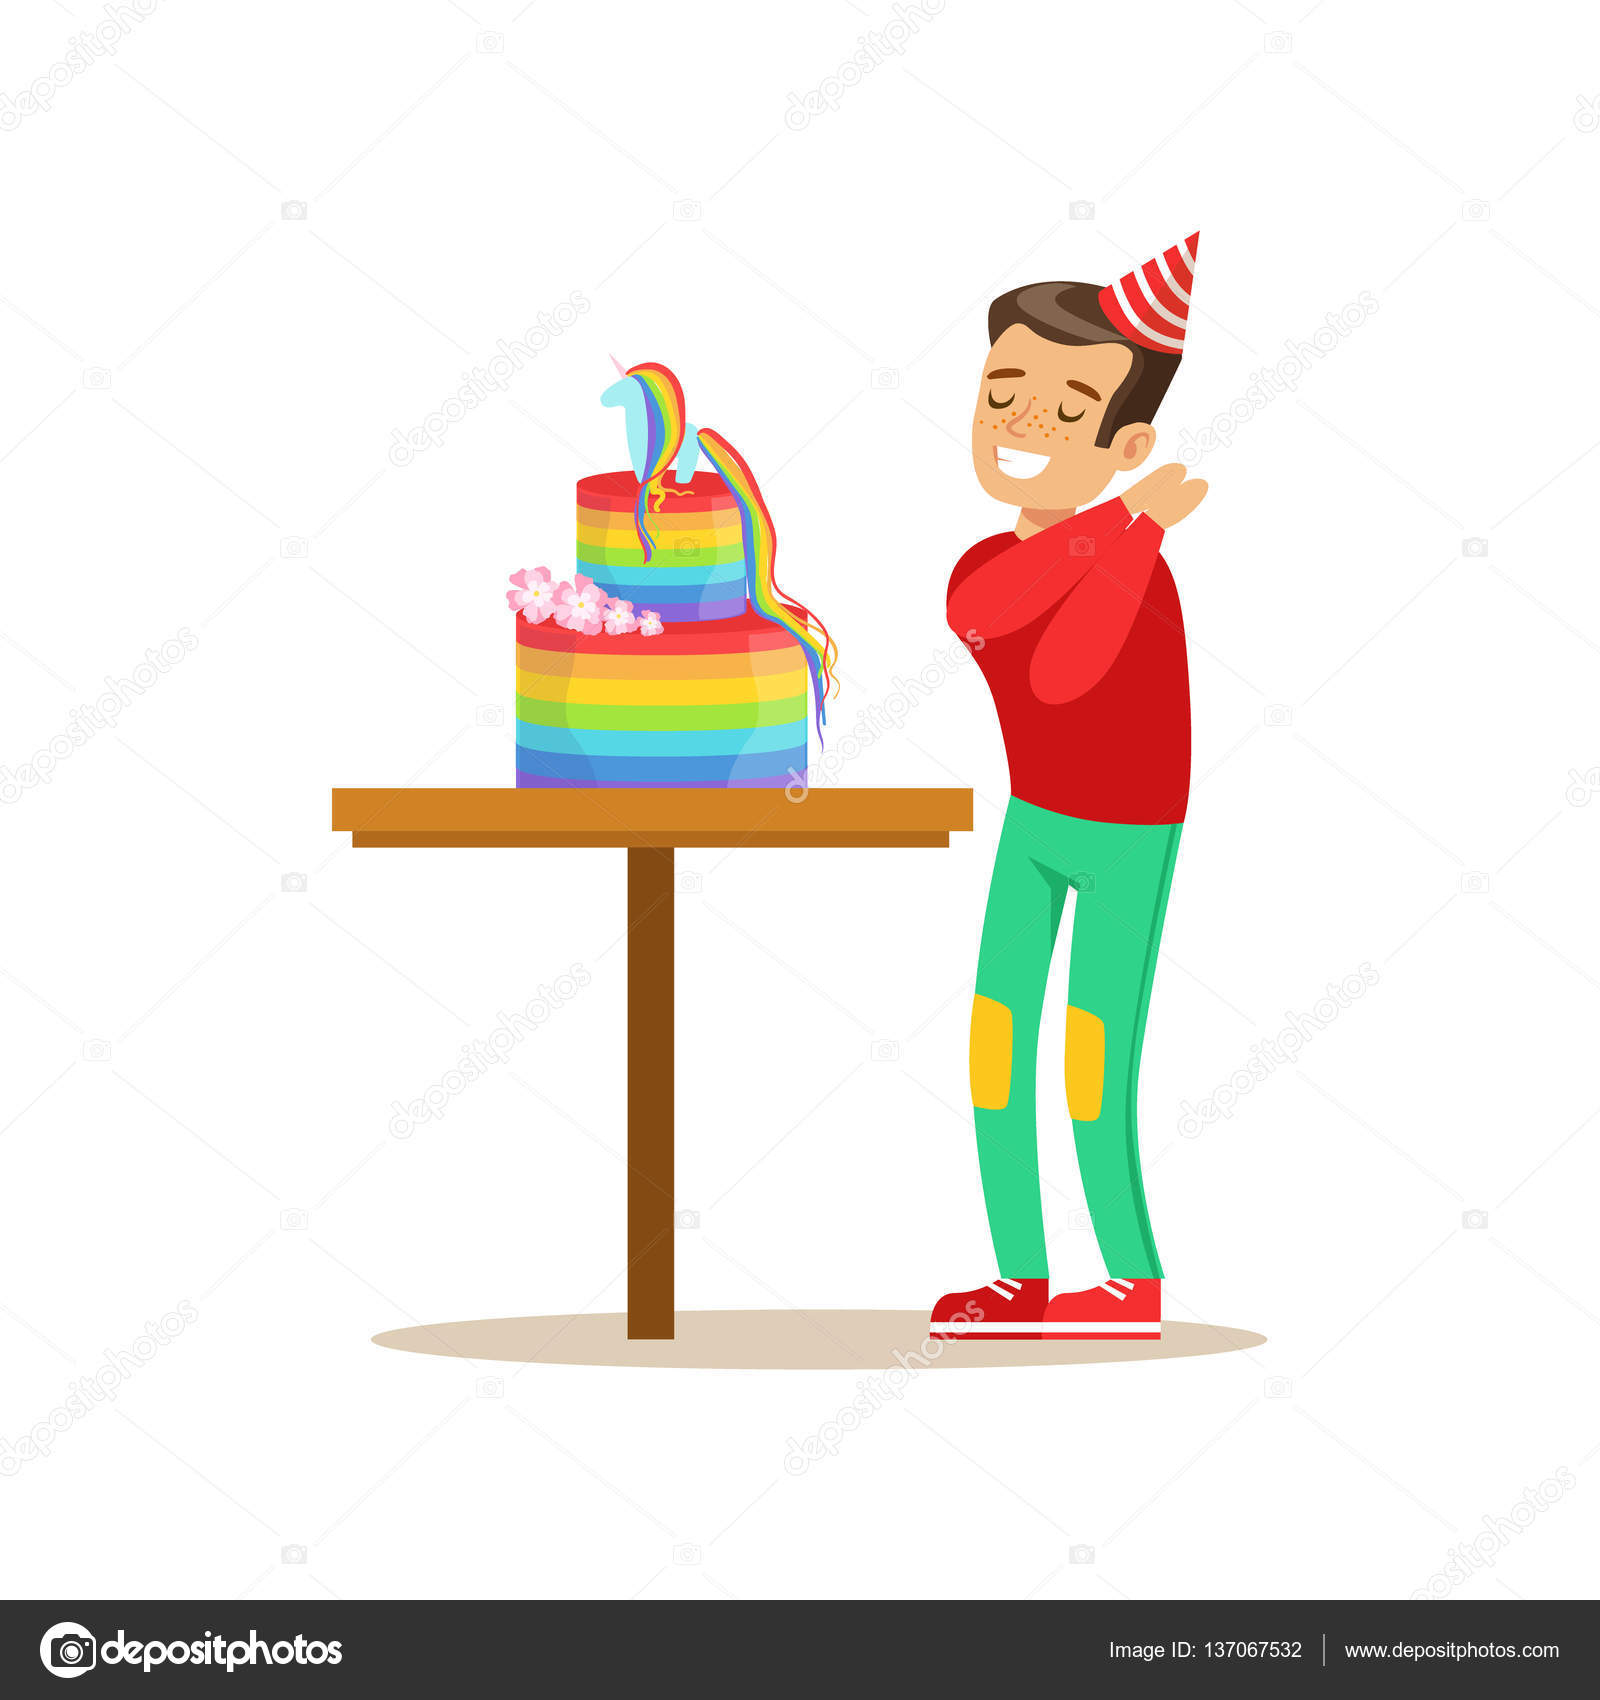 Boy Enjoying Rainbow Cake Kids Birthday Party Scene With Cartoon